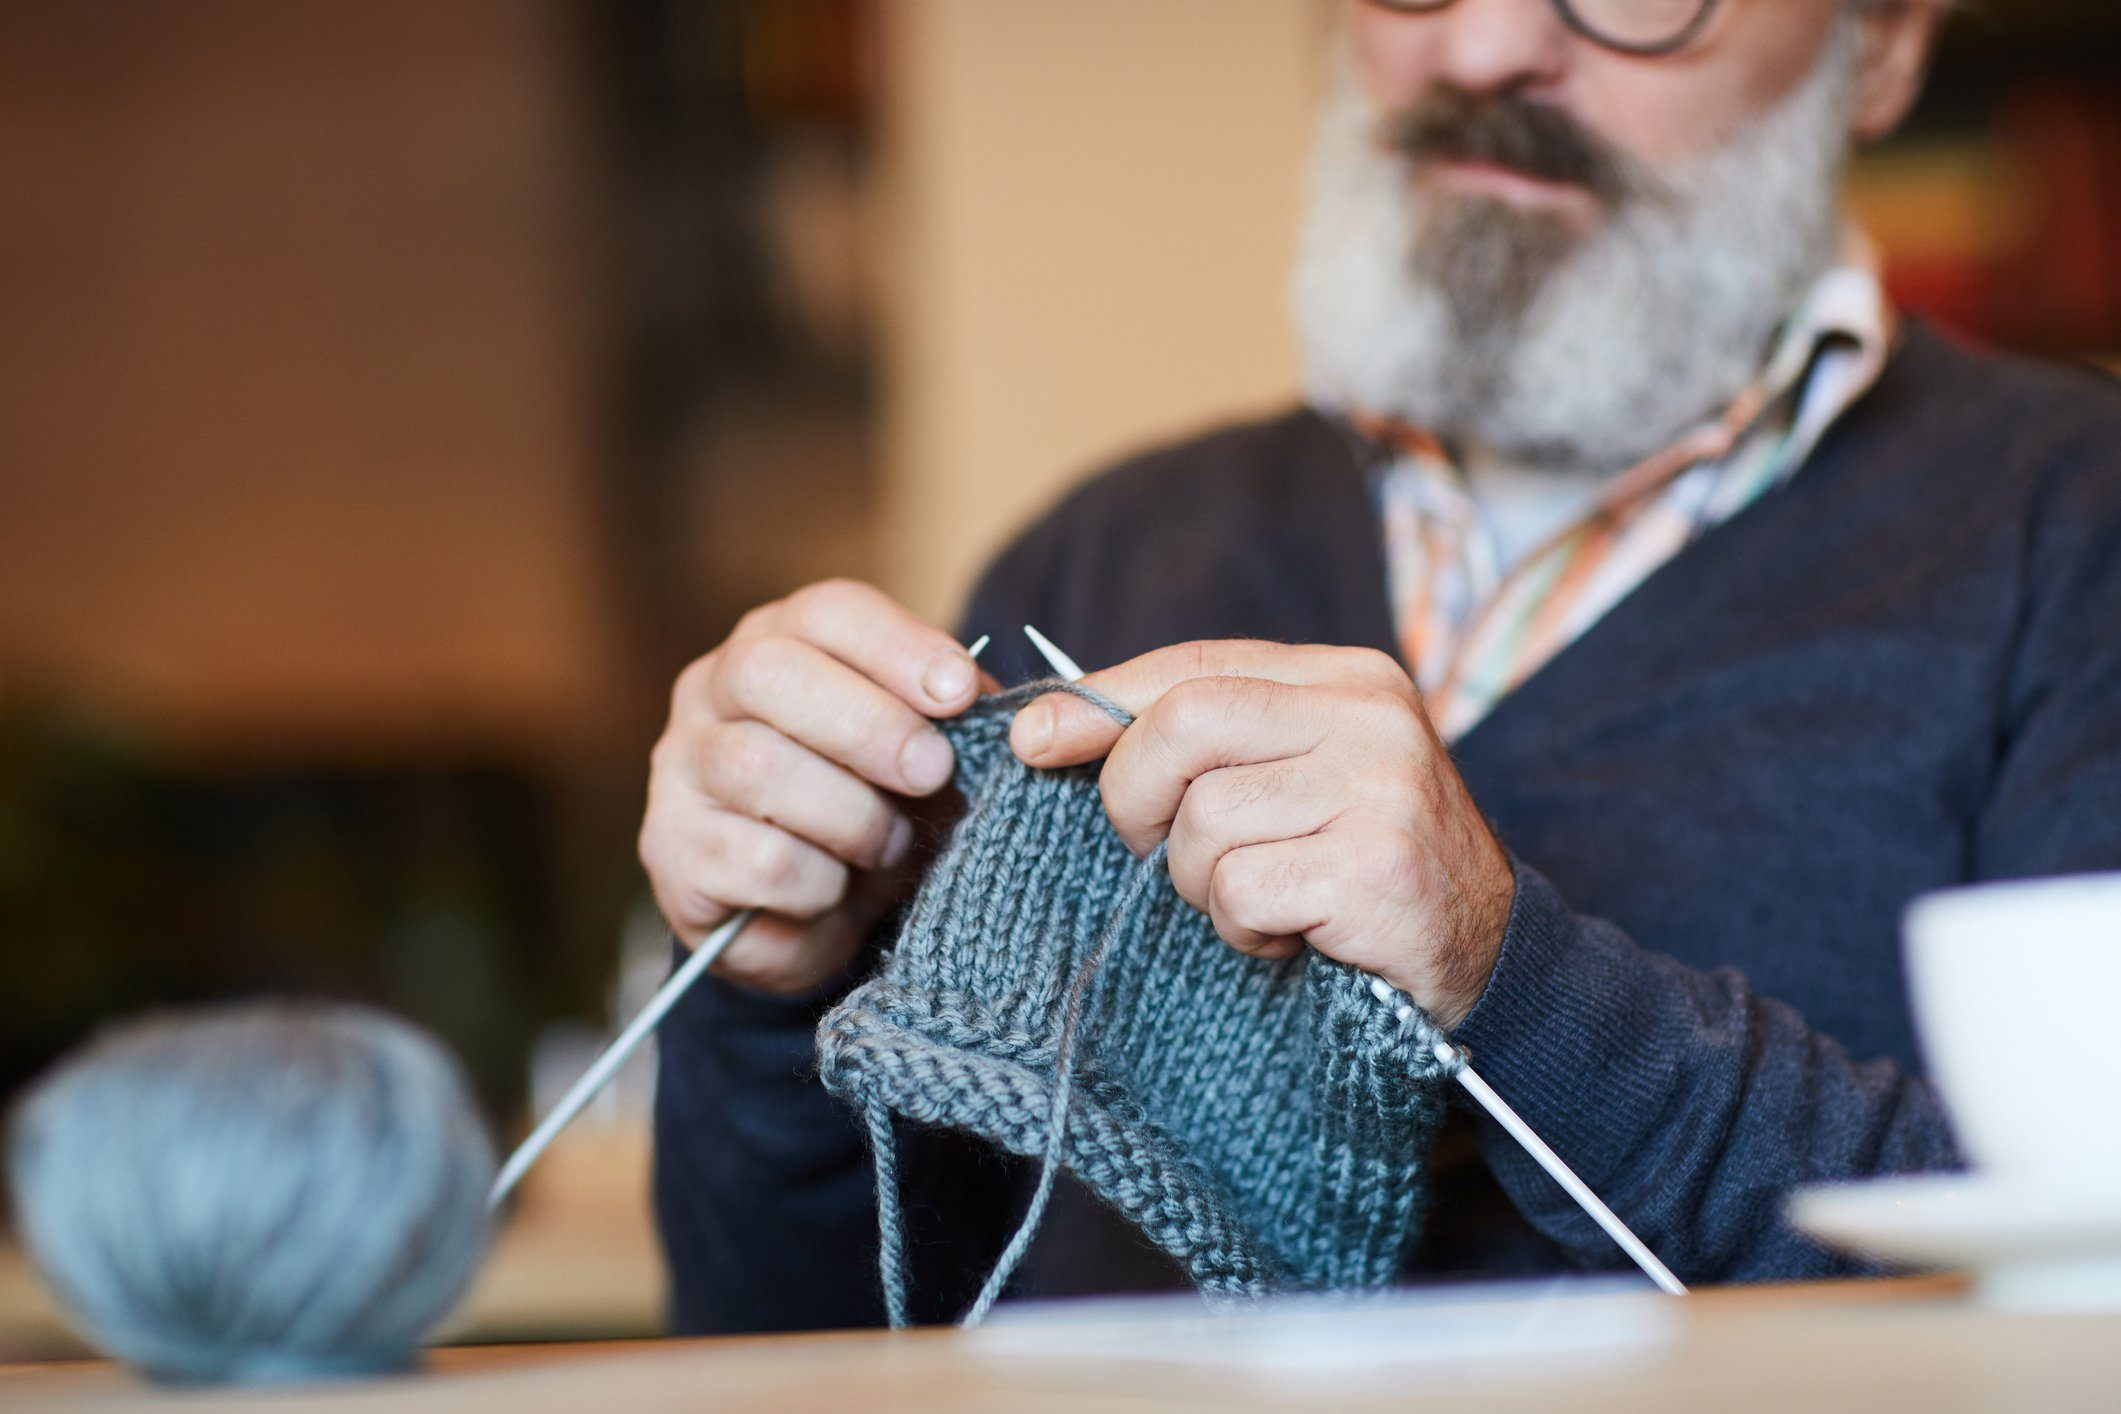 Grandpa knitting